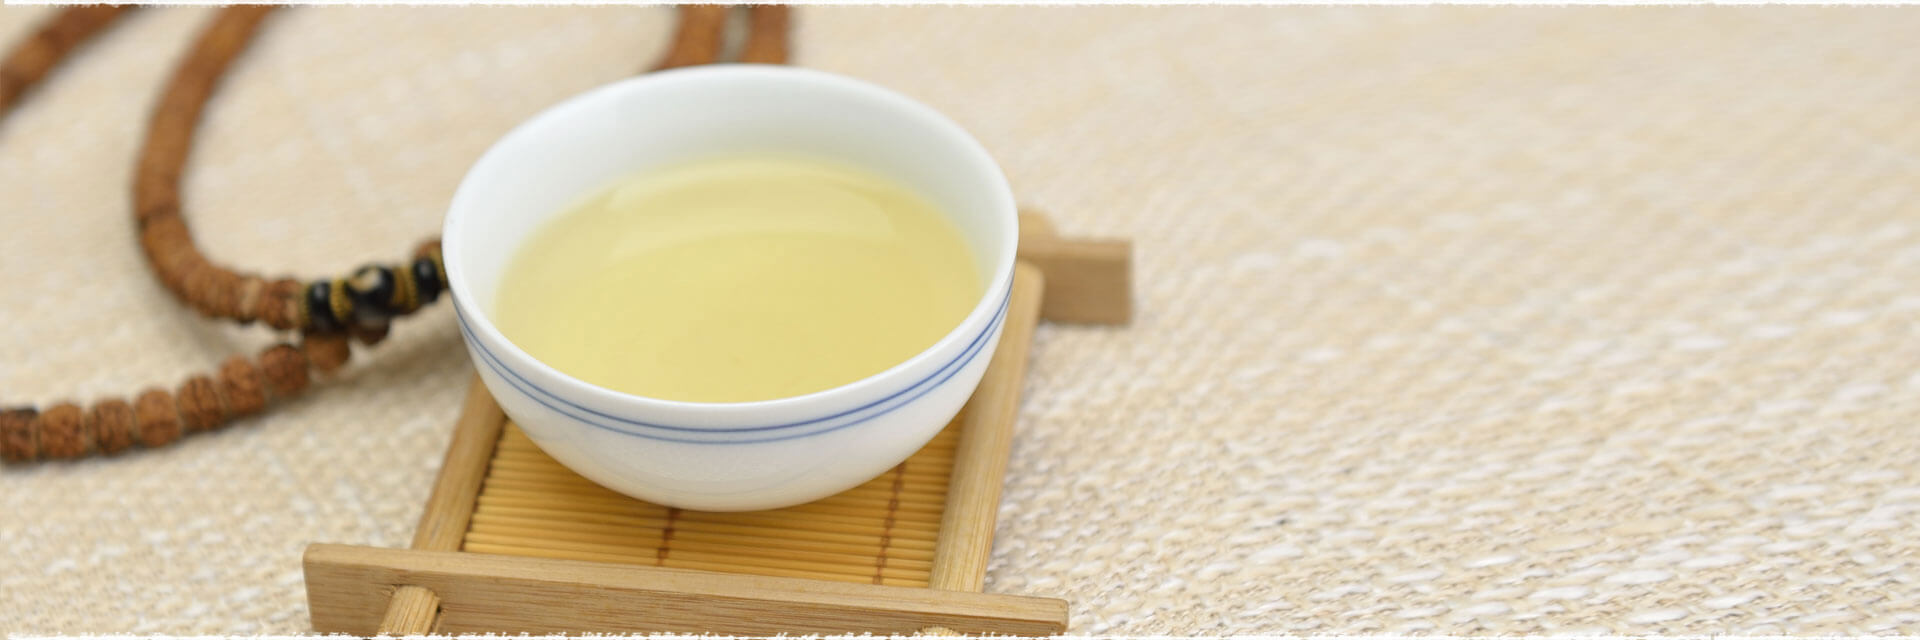 Organic Tie Guan Yin – The Oolong Tea of Superior Quality